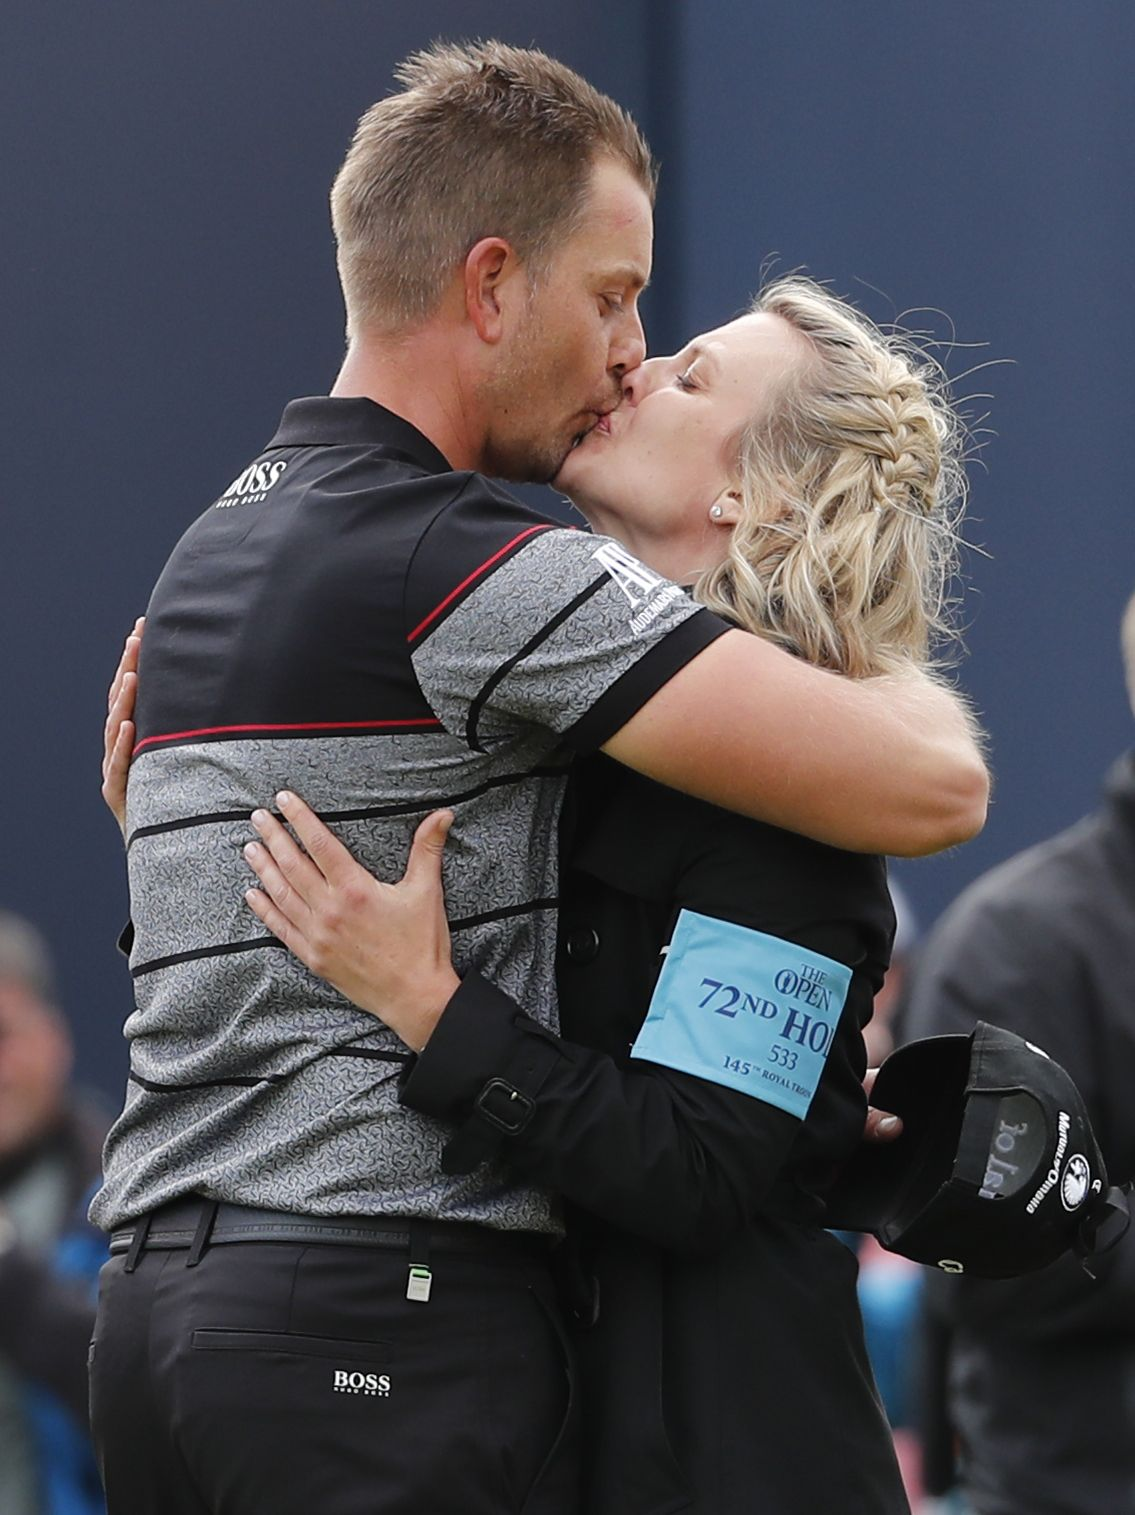 Stenson's Gamecock connection